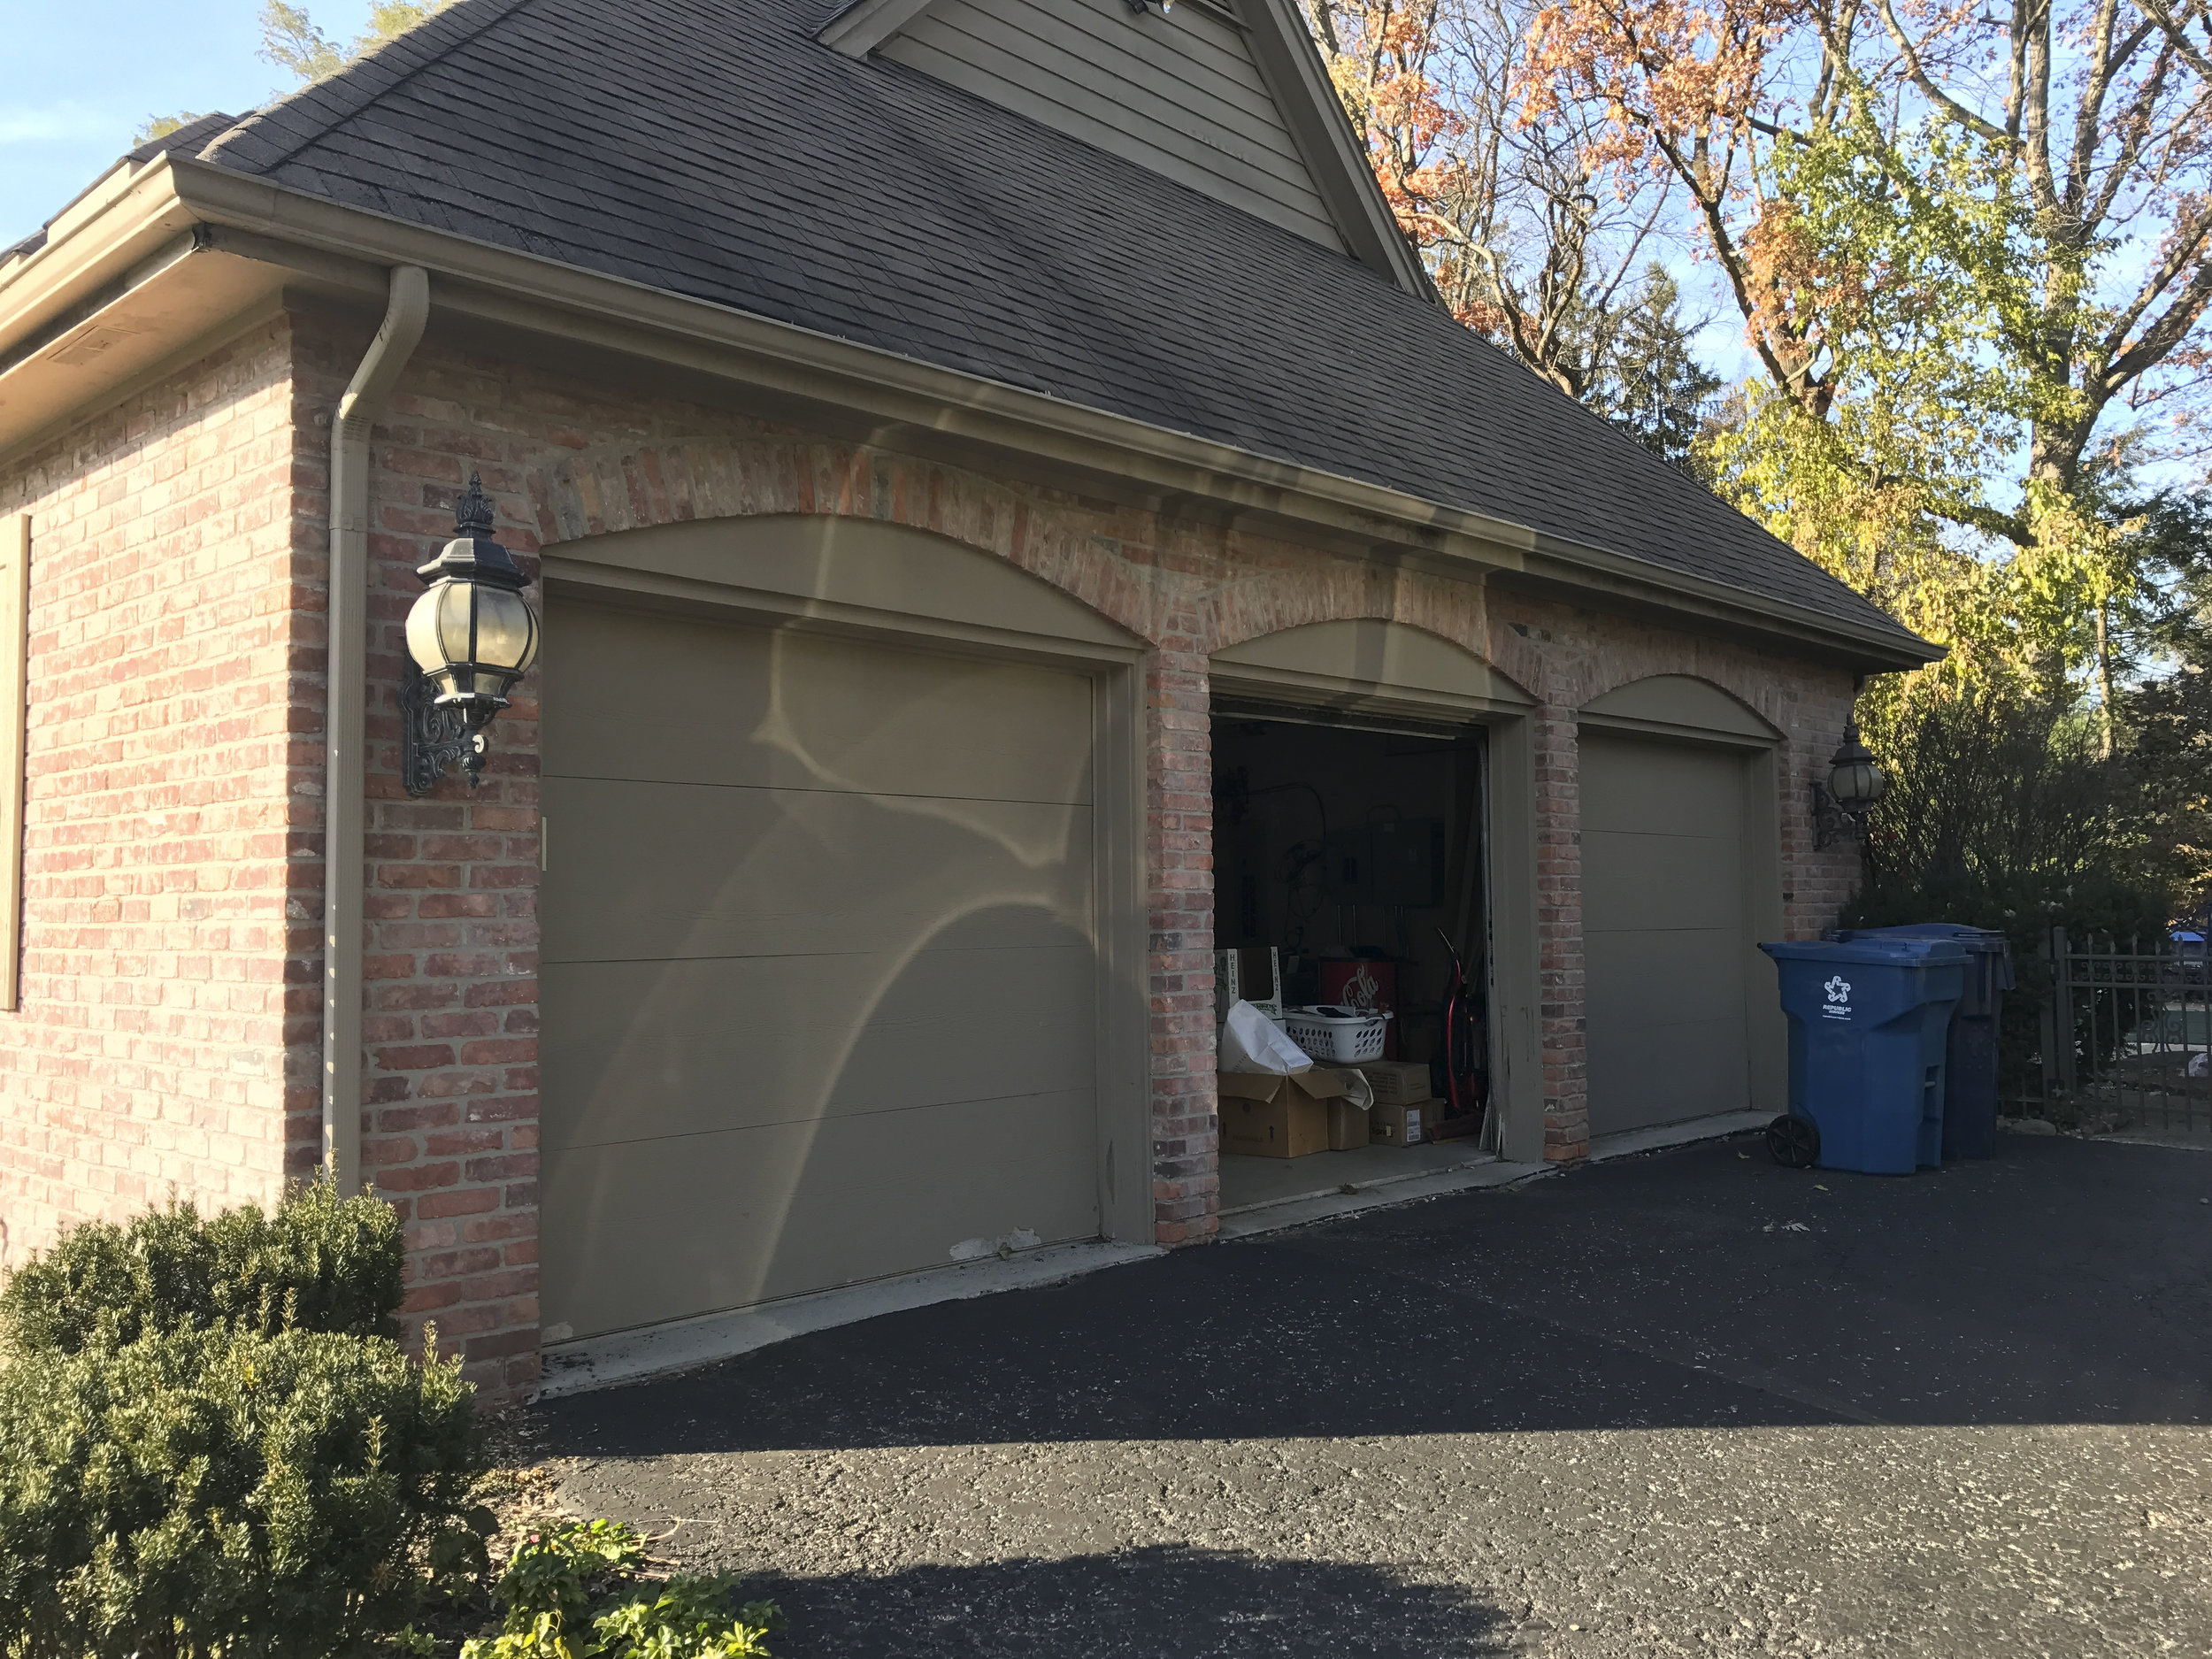 Garage before. Framing between the two doors on the left side of the frame will be removed to create one large single door.